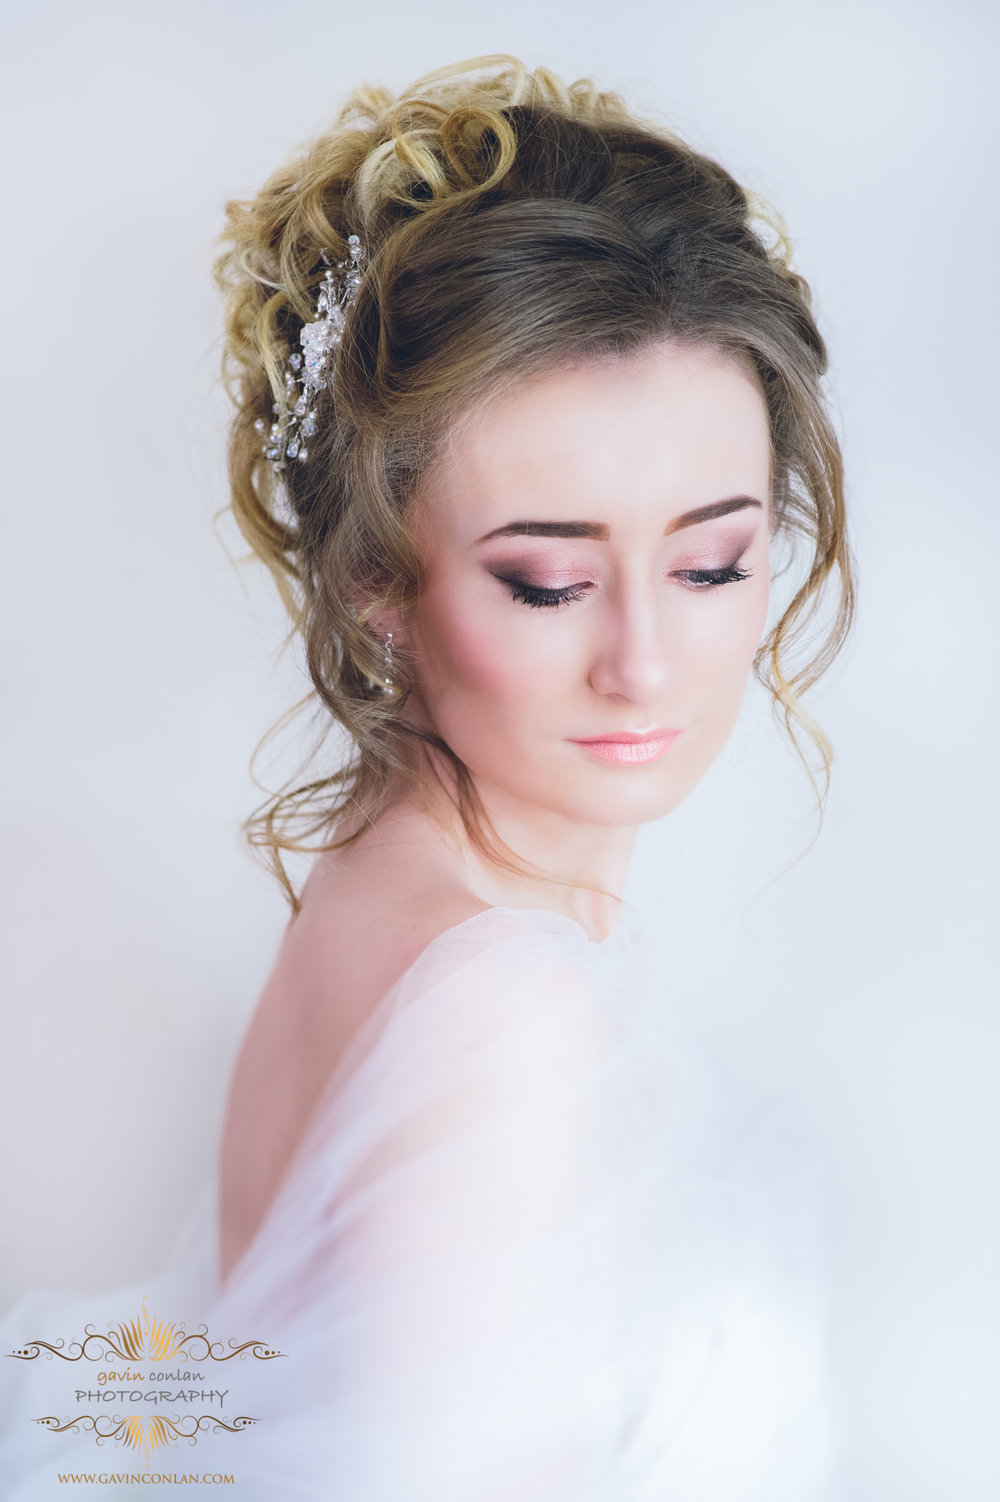 creative-bridal-hair-make-up-jewellery-photo-shoot-gavinconlanphotography-11